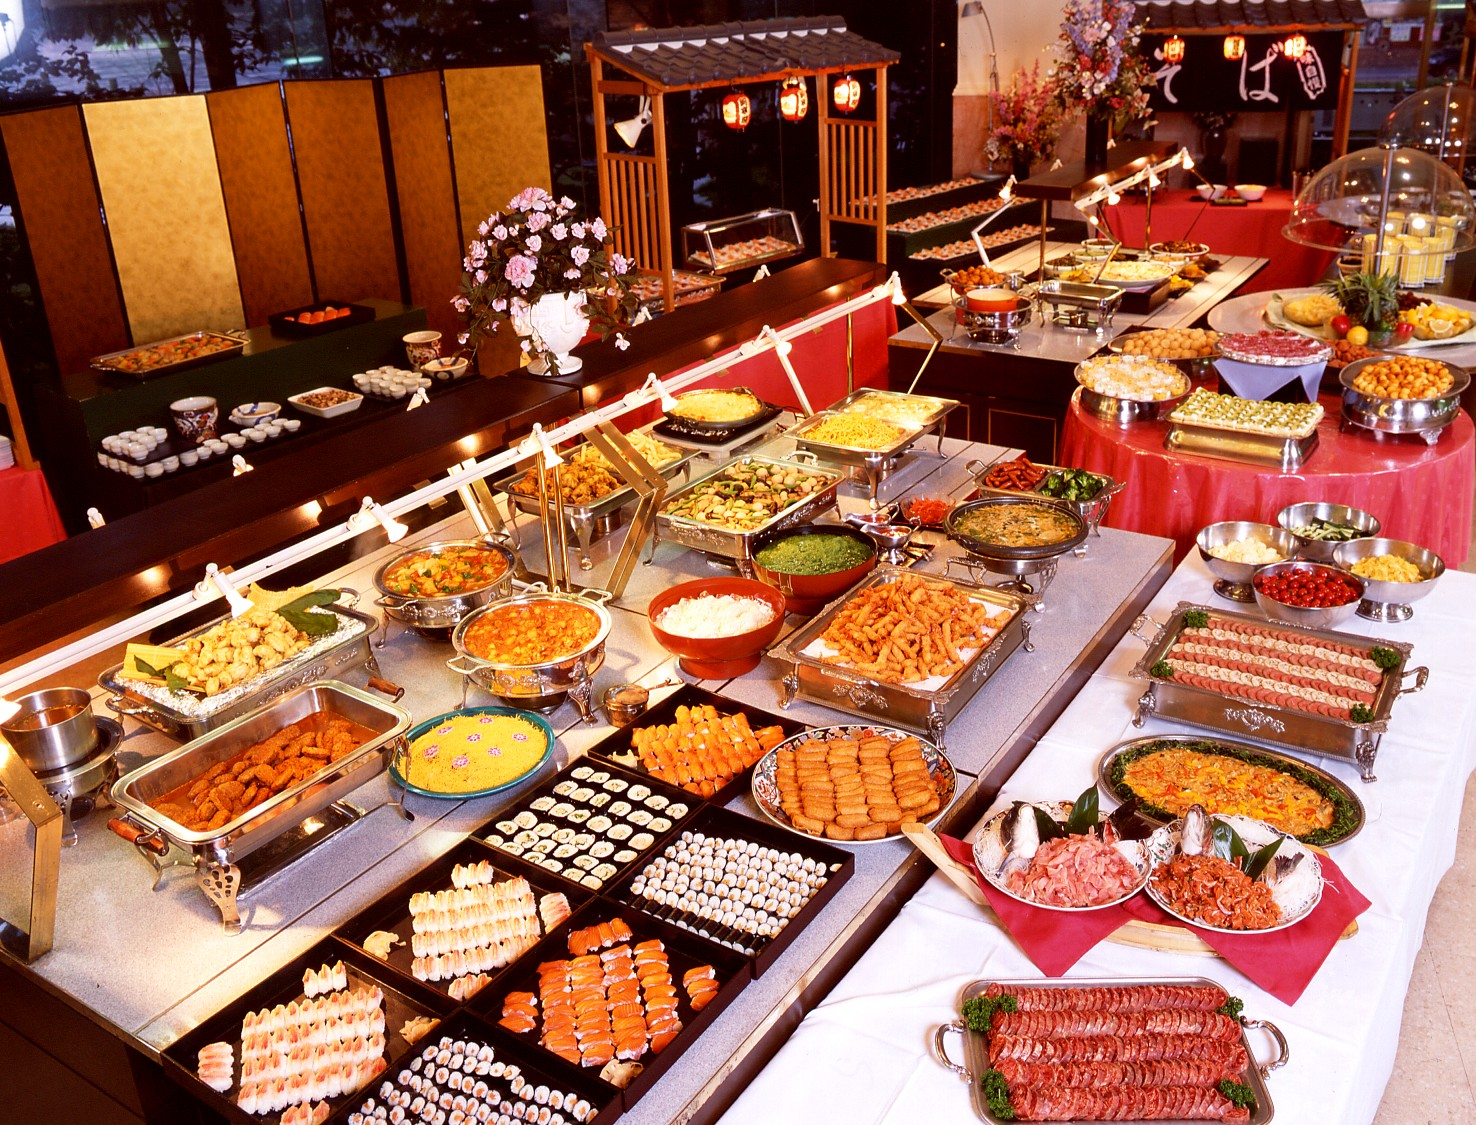 All You Can Eat Buffet Food